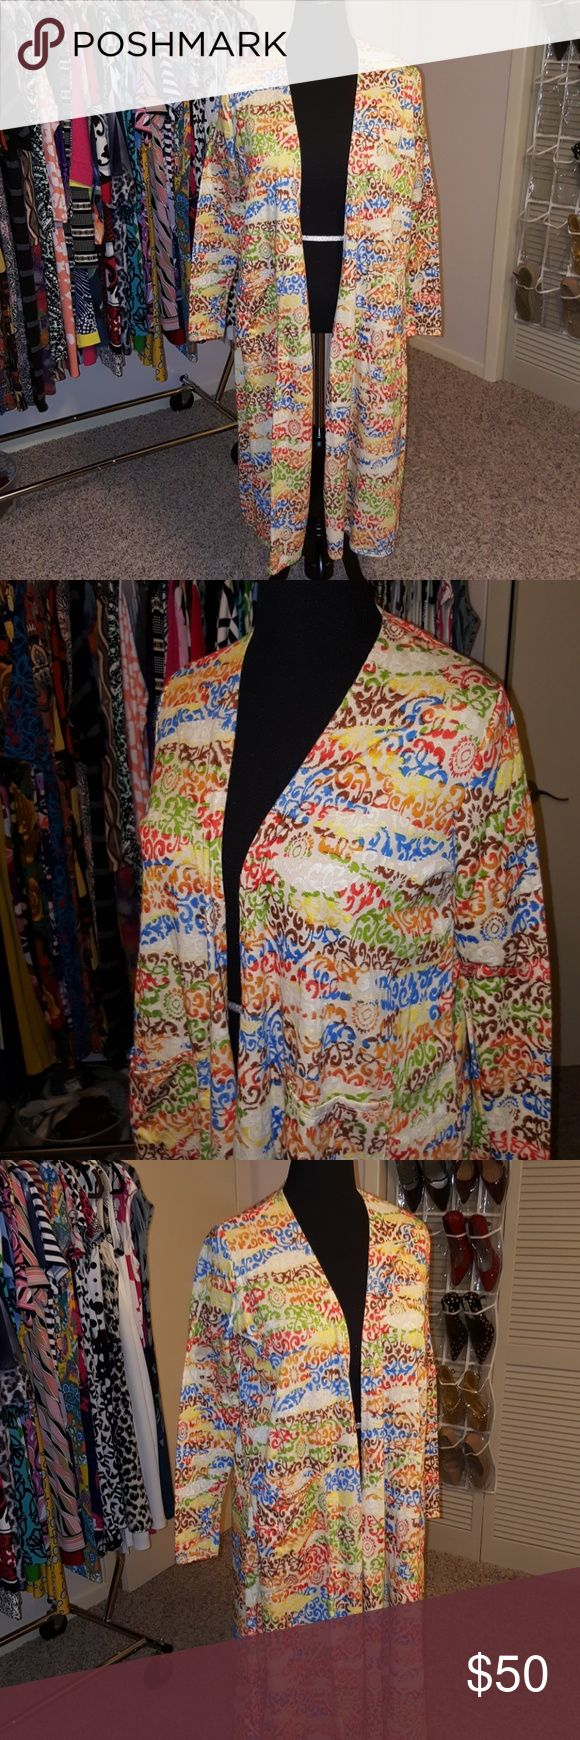 Lularoe Sarah Duster Fun colors, almost Asian or tribal inspired... Cream background. This was one of my Unicorns and when I found it finally I just didn't wear as much as I thought I would... Perfect condition Lularoe  Sweaters Cardigans